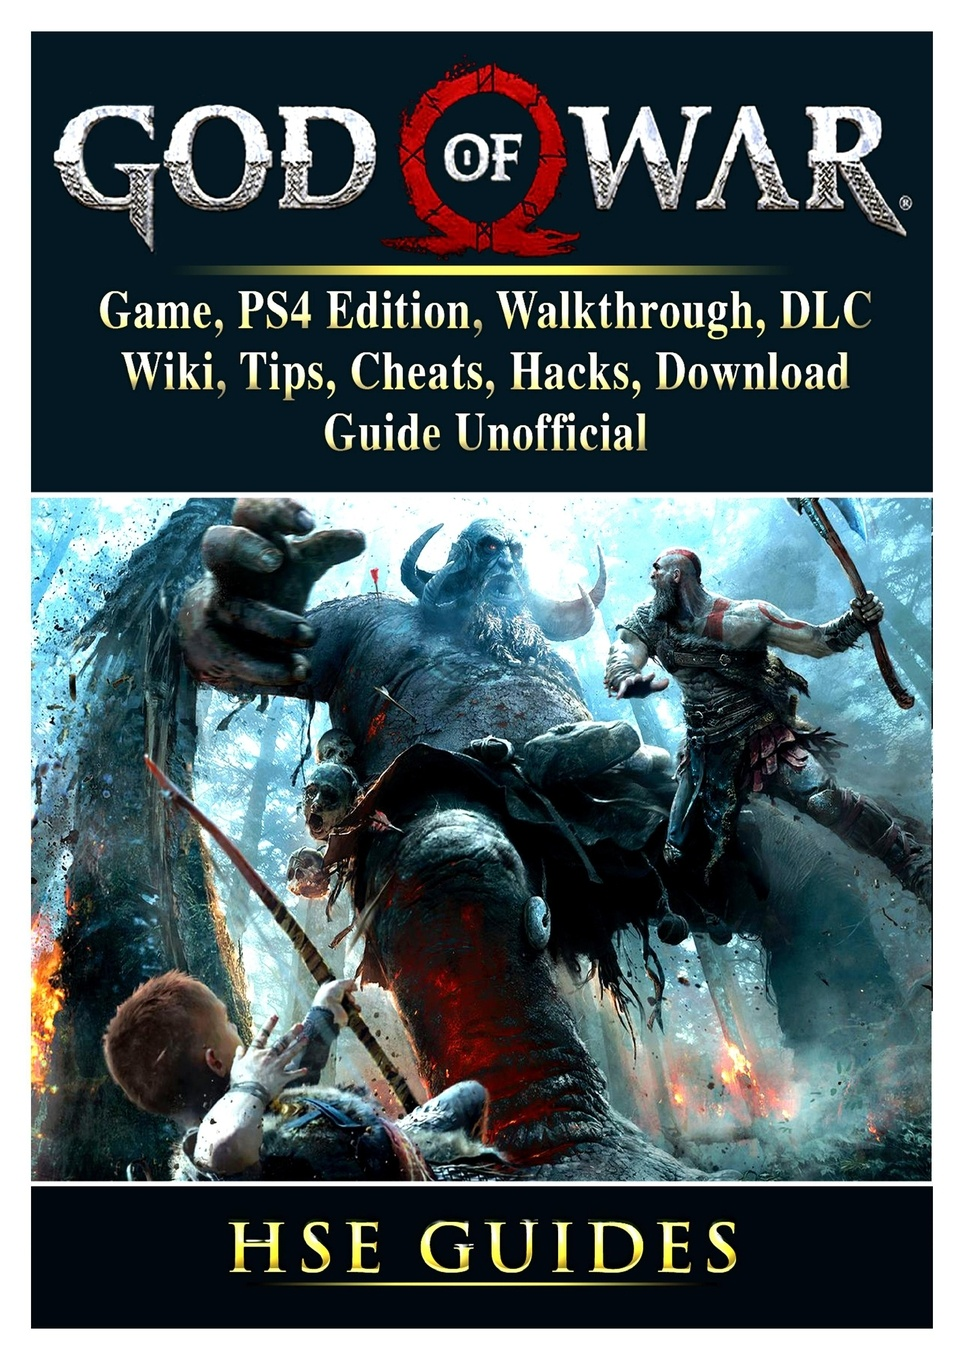 где купить Hse Guides God of War 4 Game, PS4 Edition, Walkthrough, DLC, Wiki, Tips, Cheats, Hacks, Download, Guide Unofficial по лучшей цене